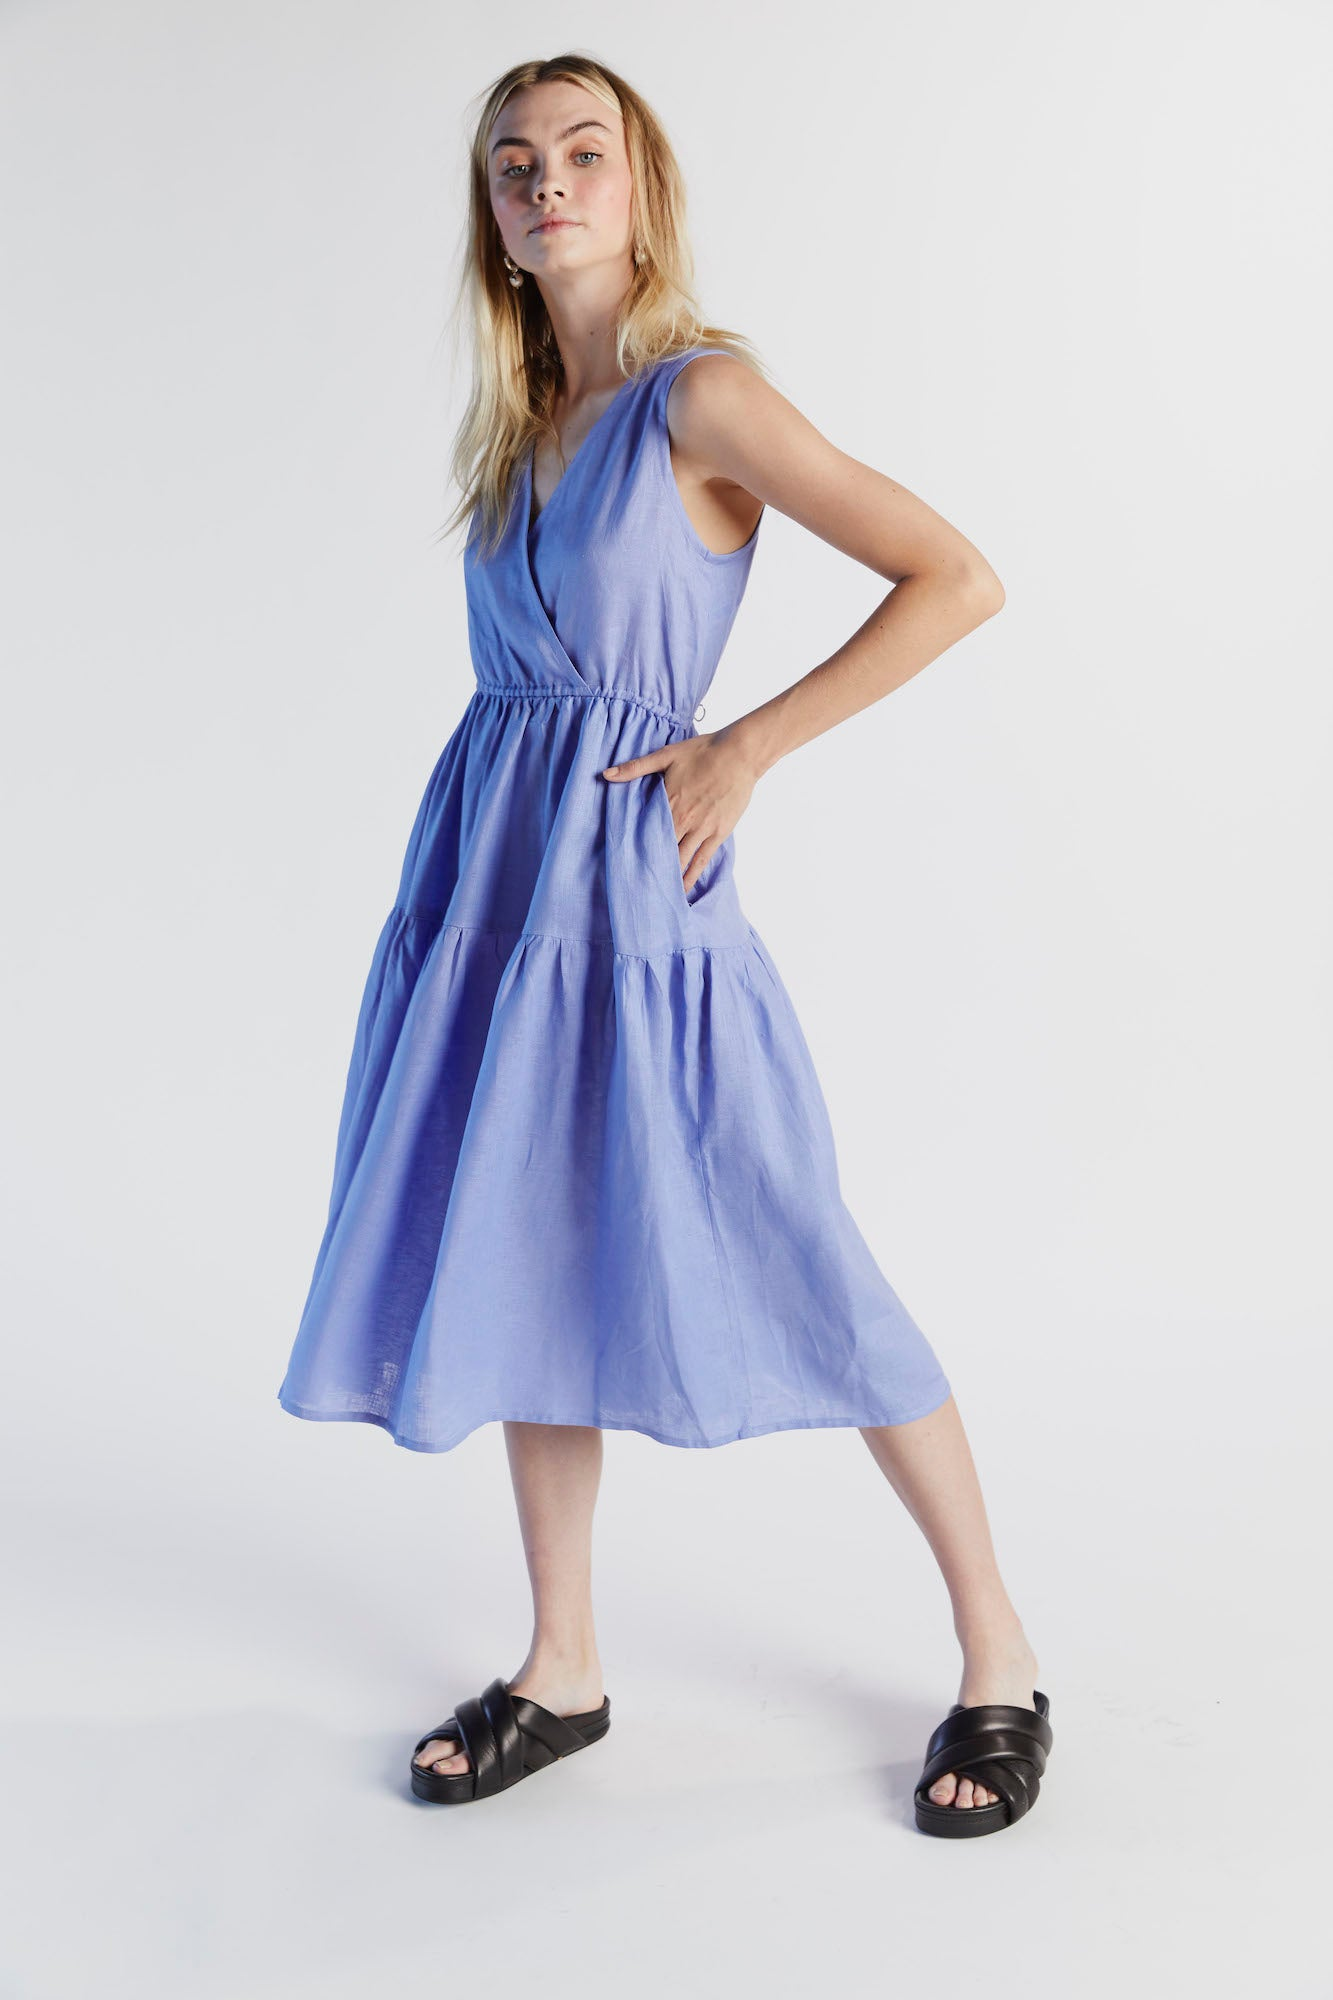 BFF Dress in Periwinkle - hej hej